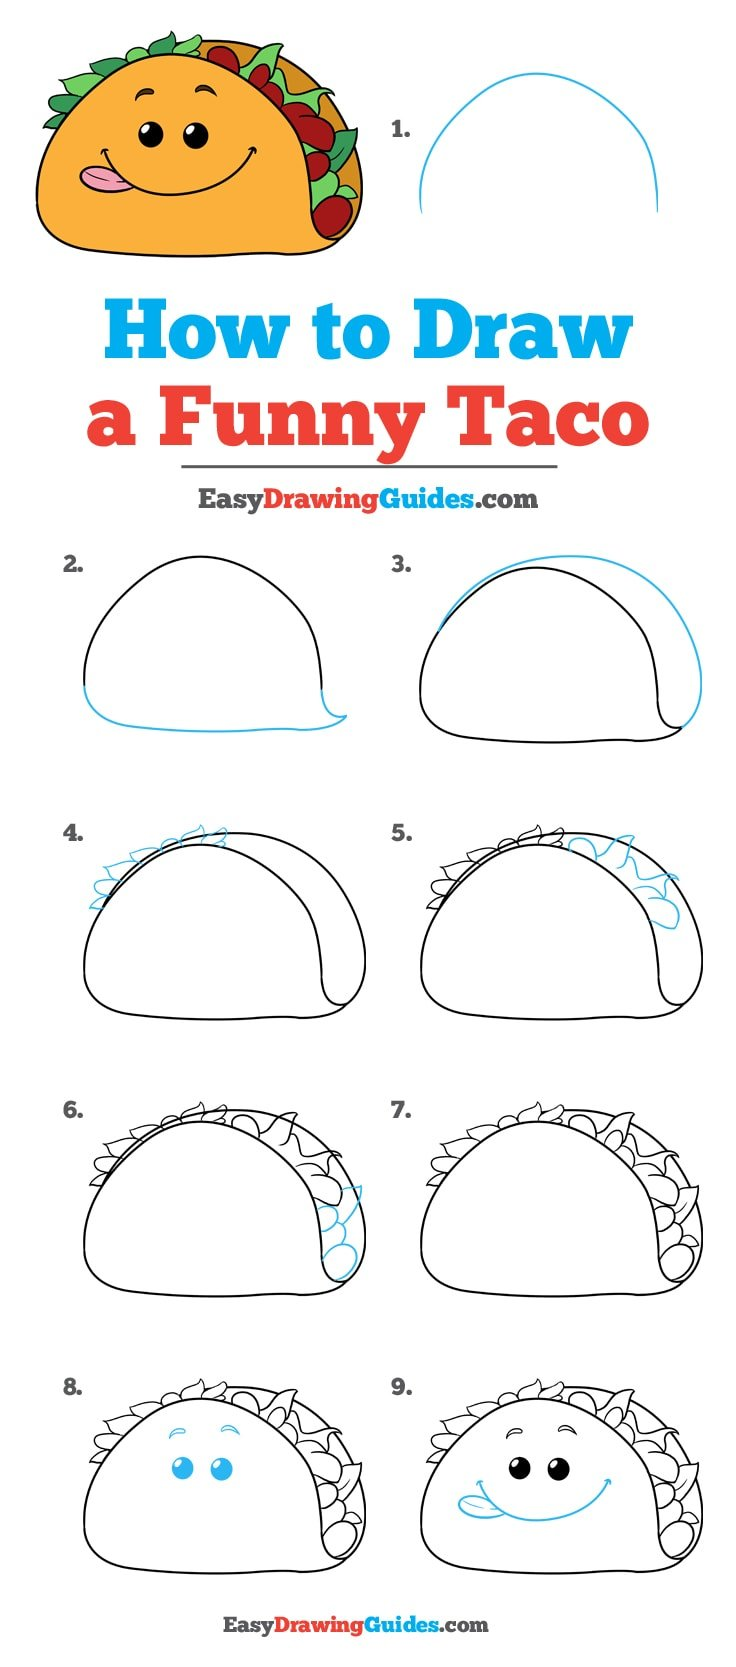 How to Draw a Funny Taco: Step by Step Tutorial